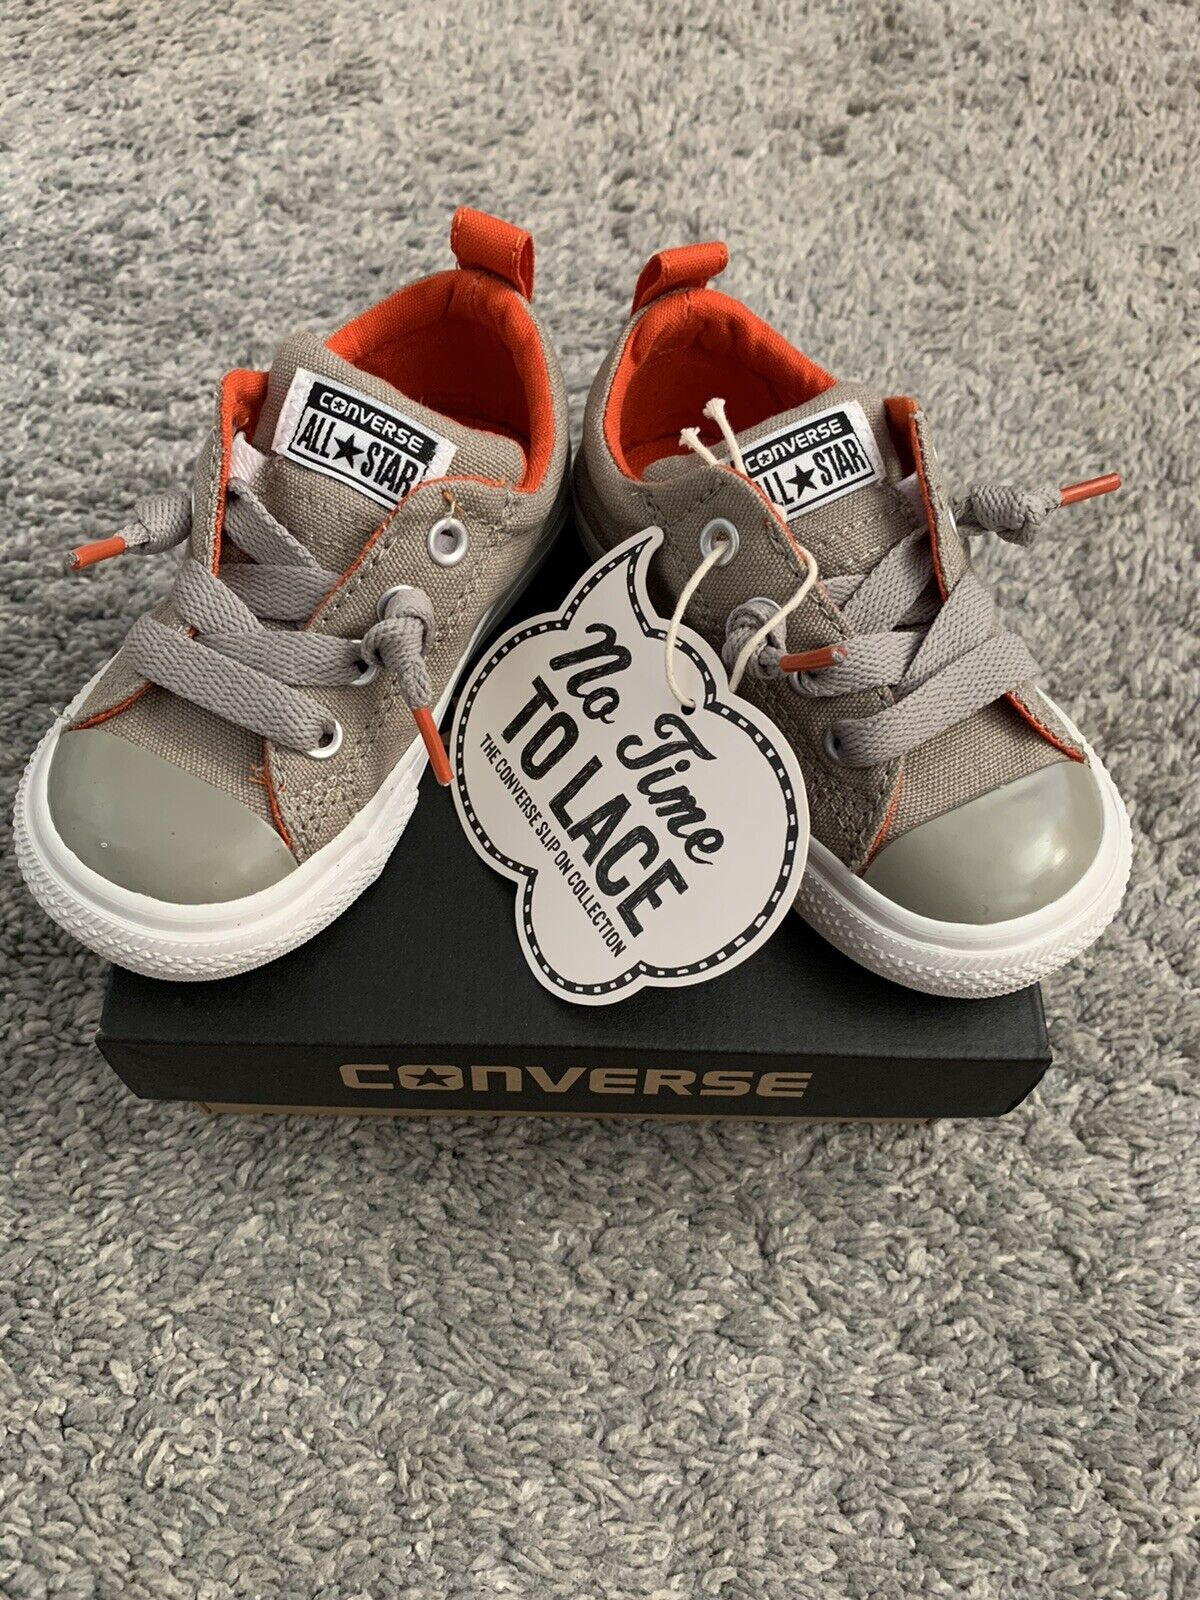 NEW Converse Toddler Infant Size 6